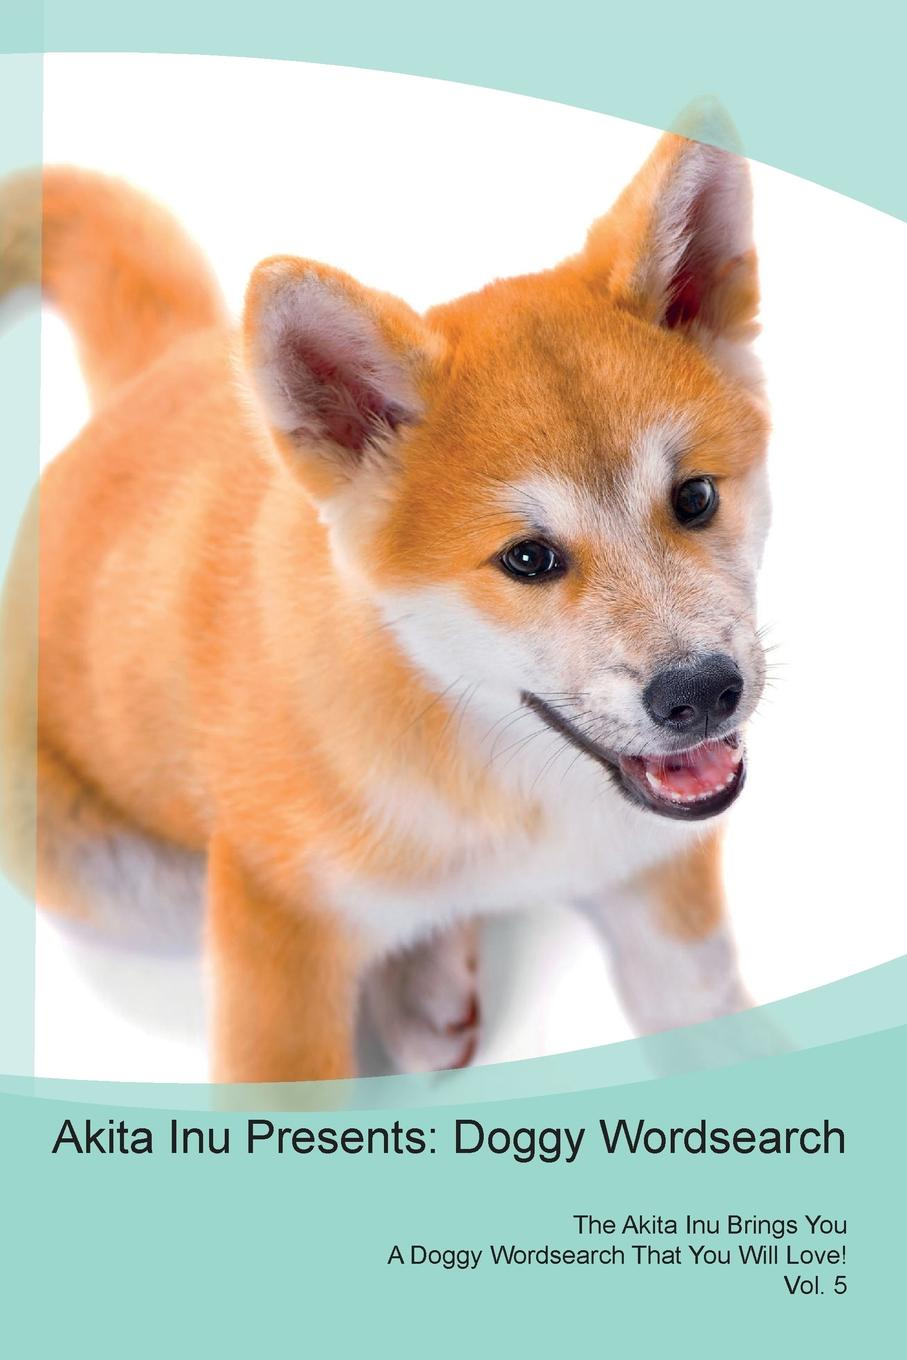 Doggy Puzzles Akita Inu Presents. Wordsearch The Brings You A That Will Love! Vol. 5